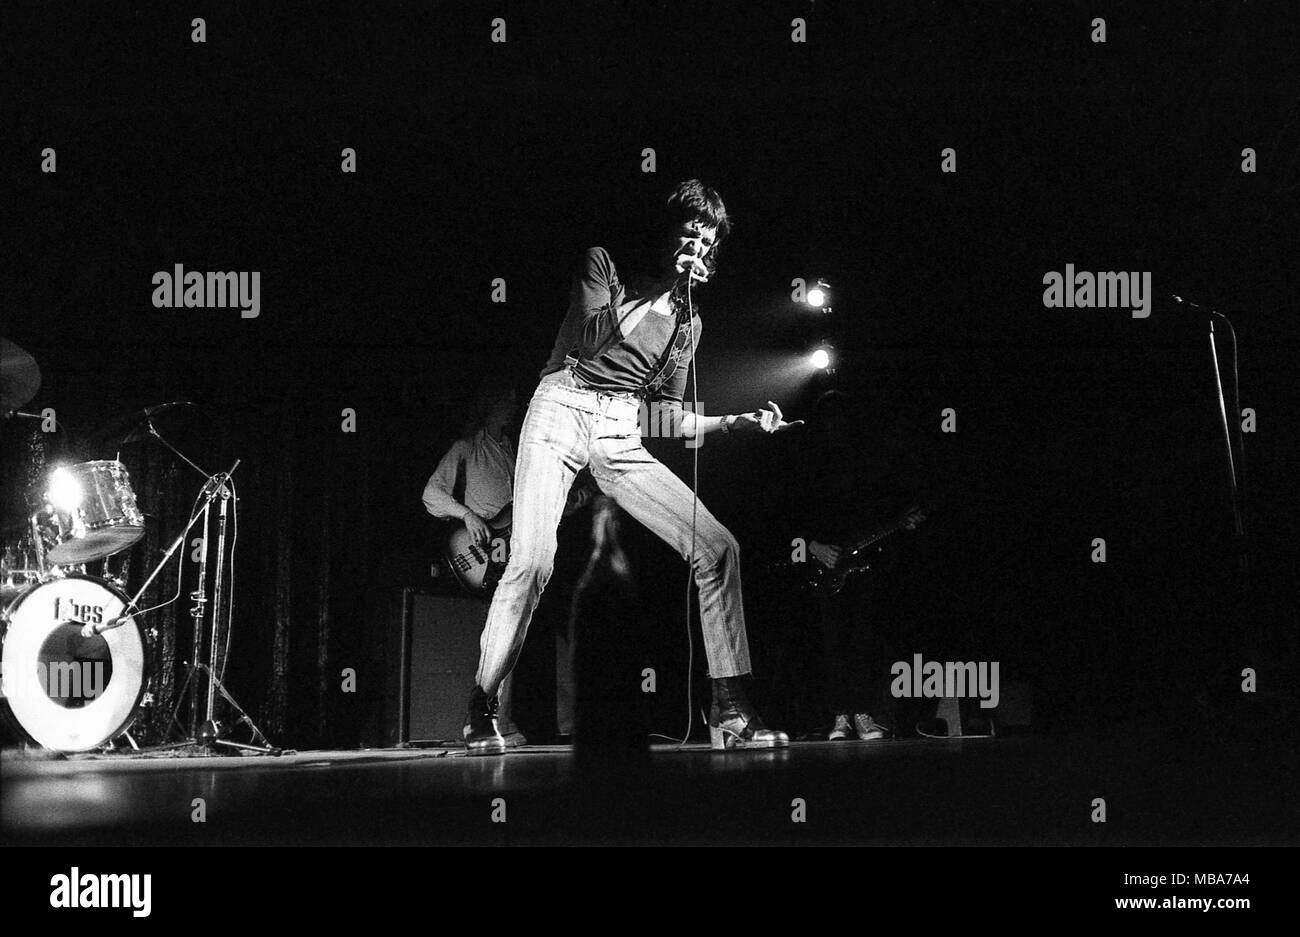 Philippe Gras / Le Pictorium -  Jacques Higelin -  1975  -  France / Ile-de-France (region) / Paris  -  Jacques Higelin, Concert at Olympia, 1975 - Stock Image